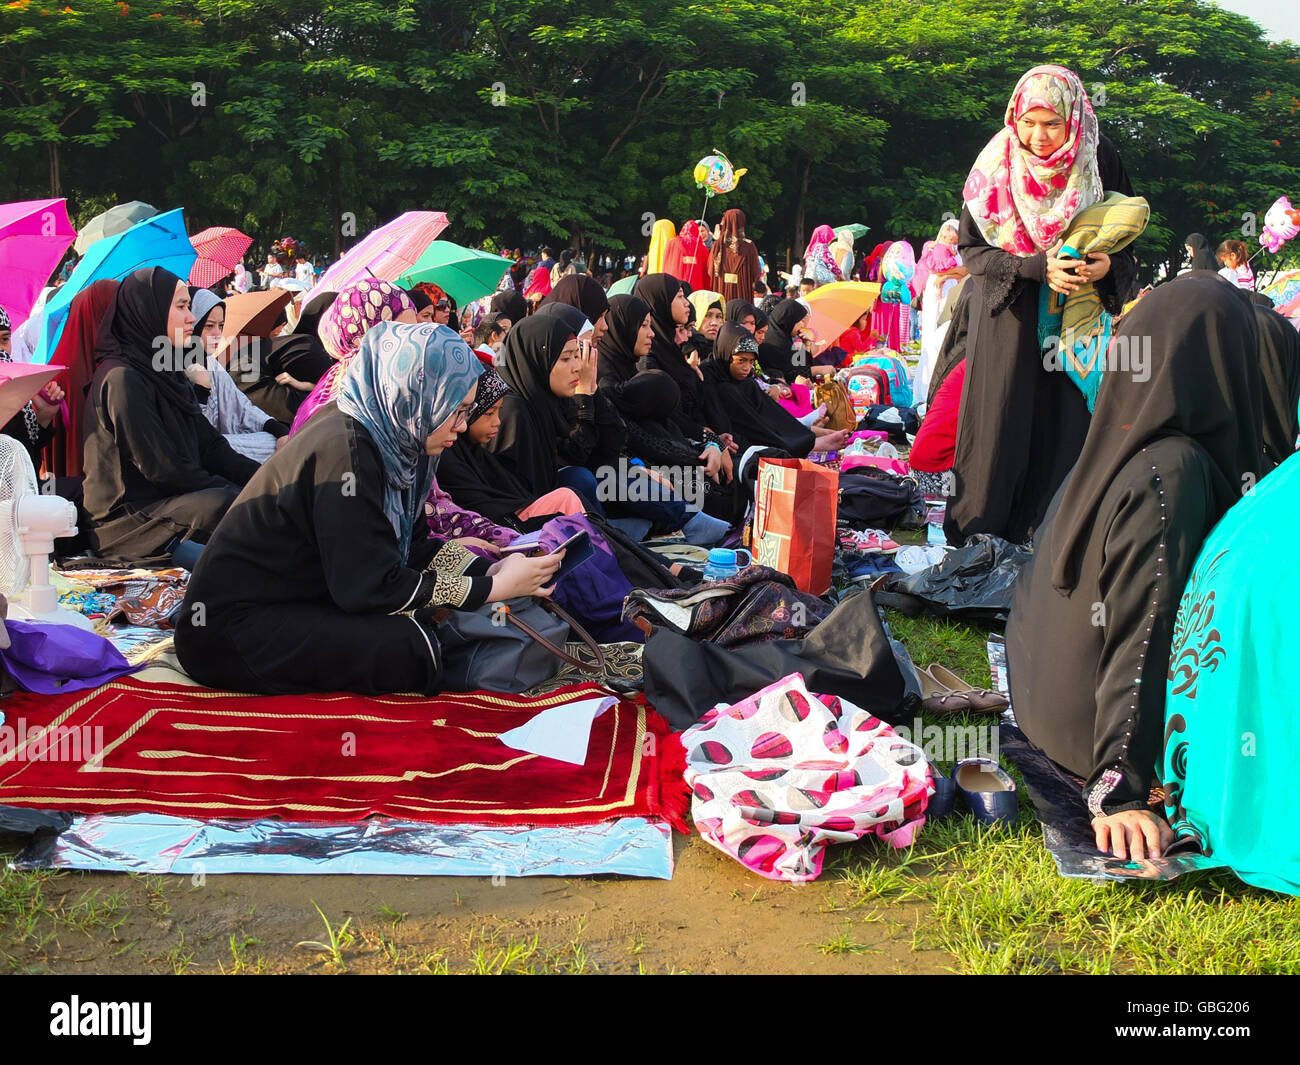 Manila, Philippines. 06th July, 2016. Muslim families gather at Quirino Grandstand in Luneta to join Eid Salat, - Stock Image